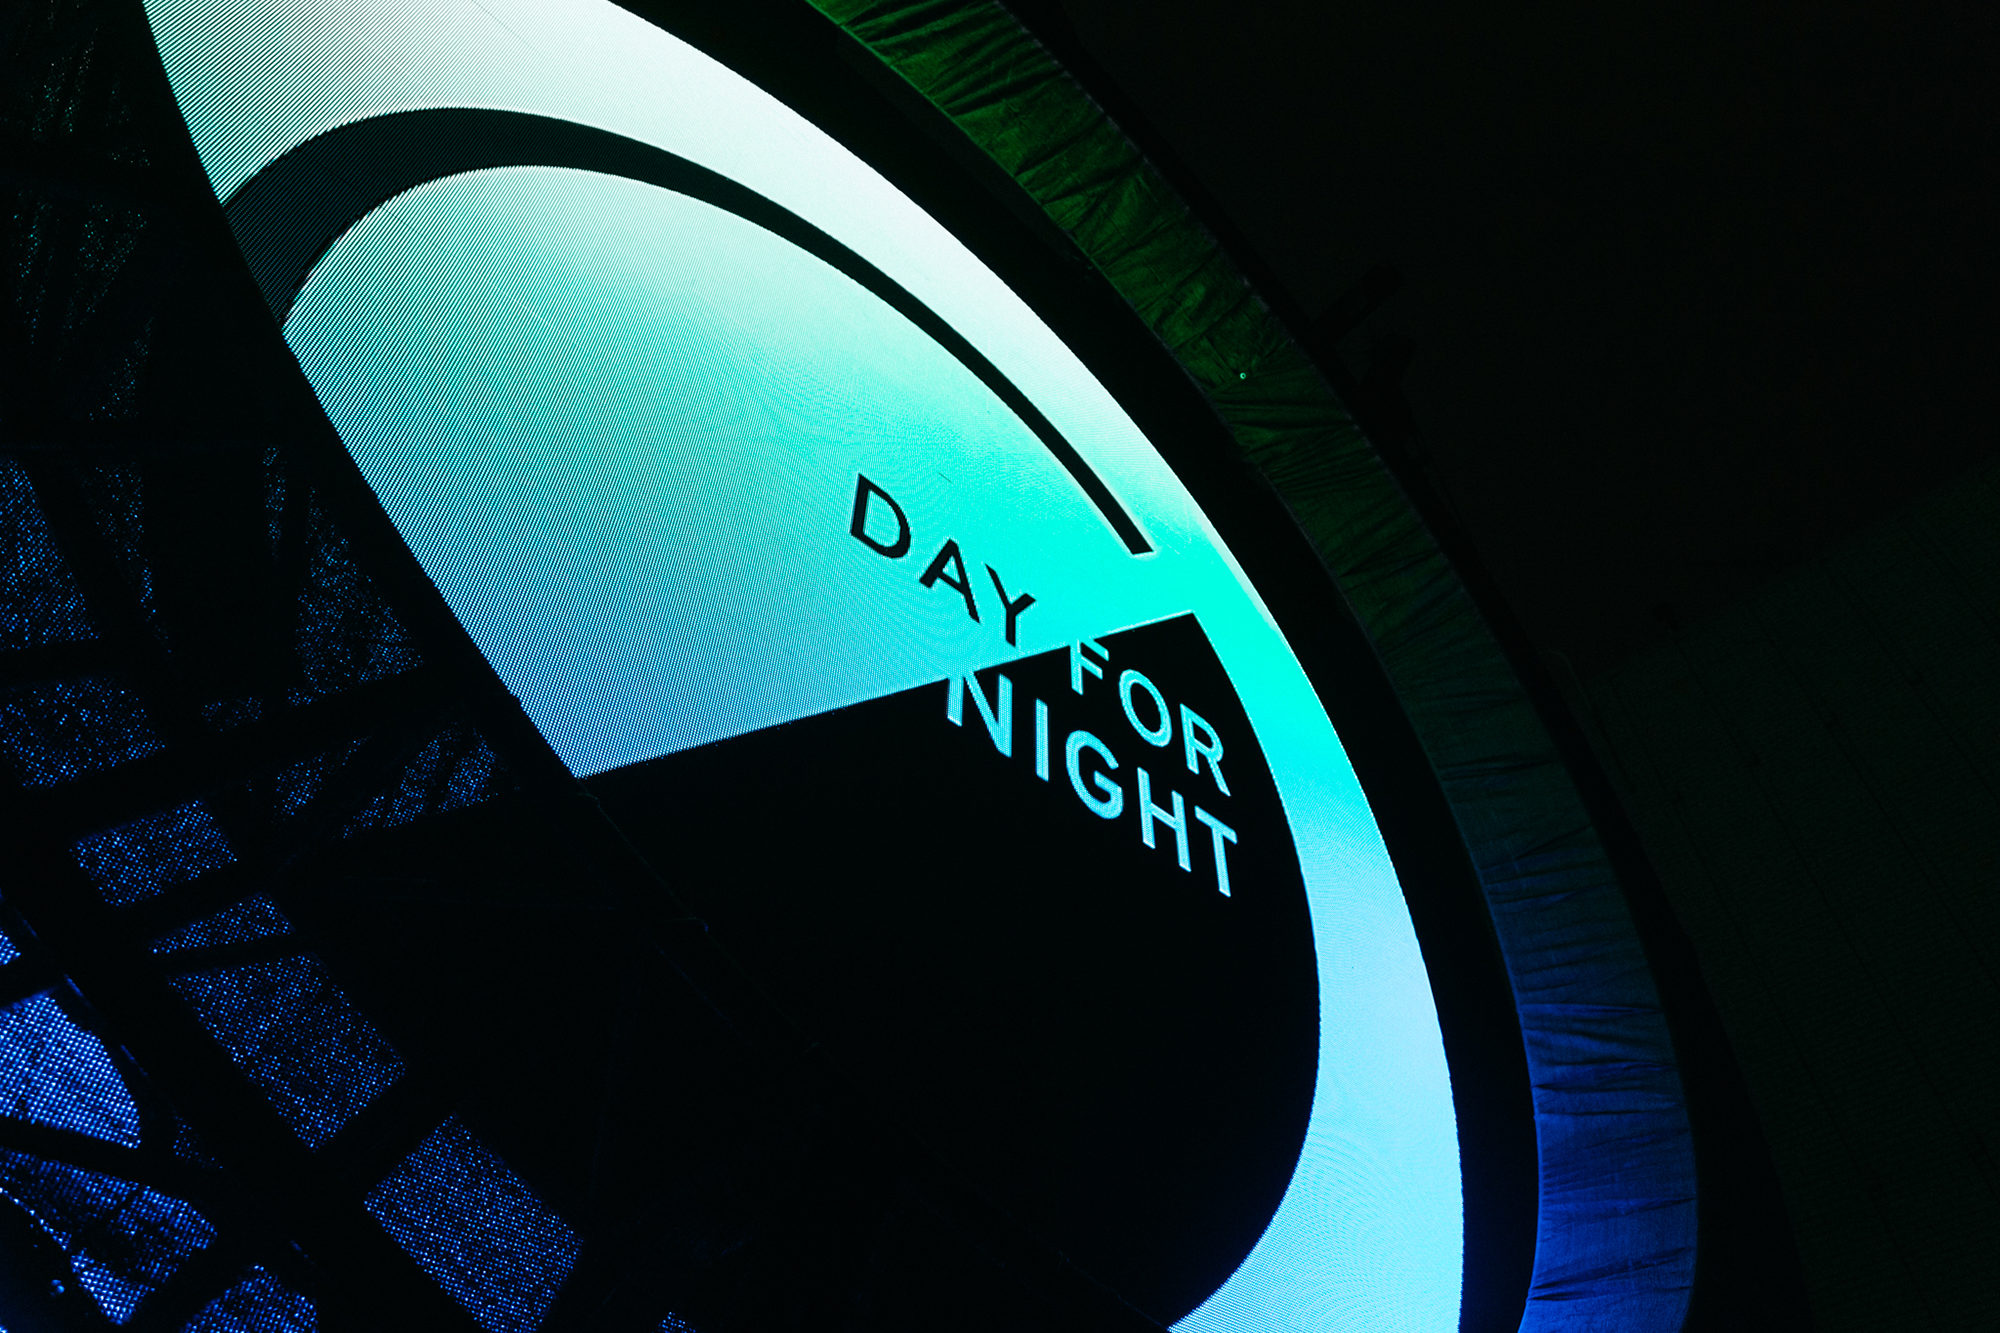 Cover image: Day for Night 2016 Branding